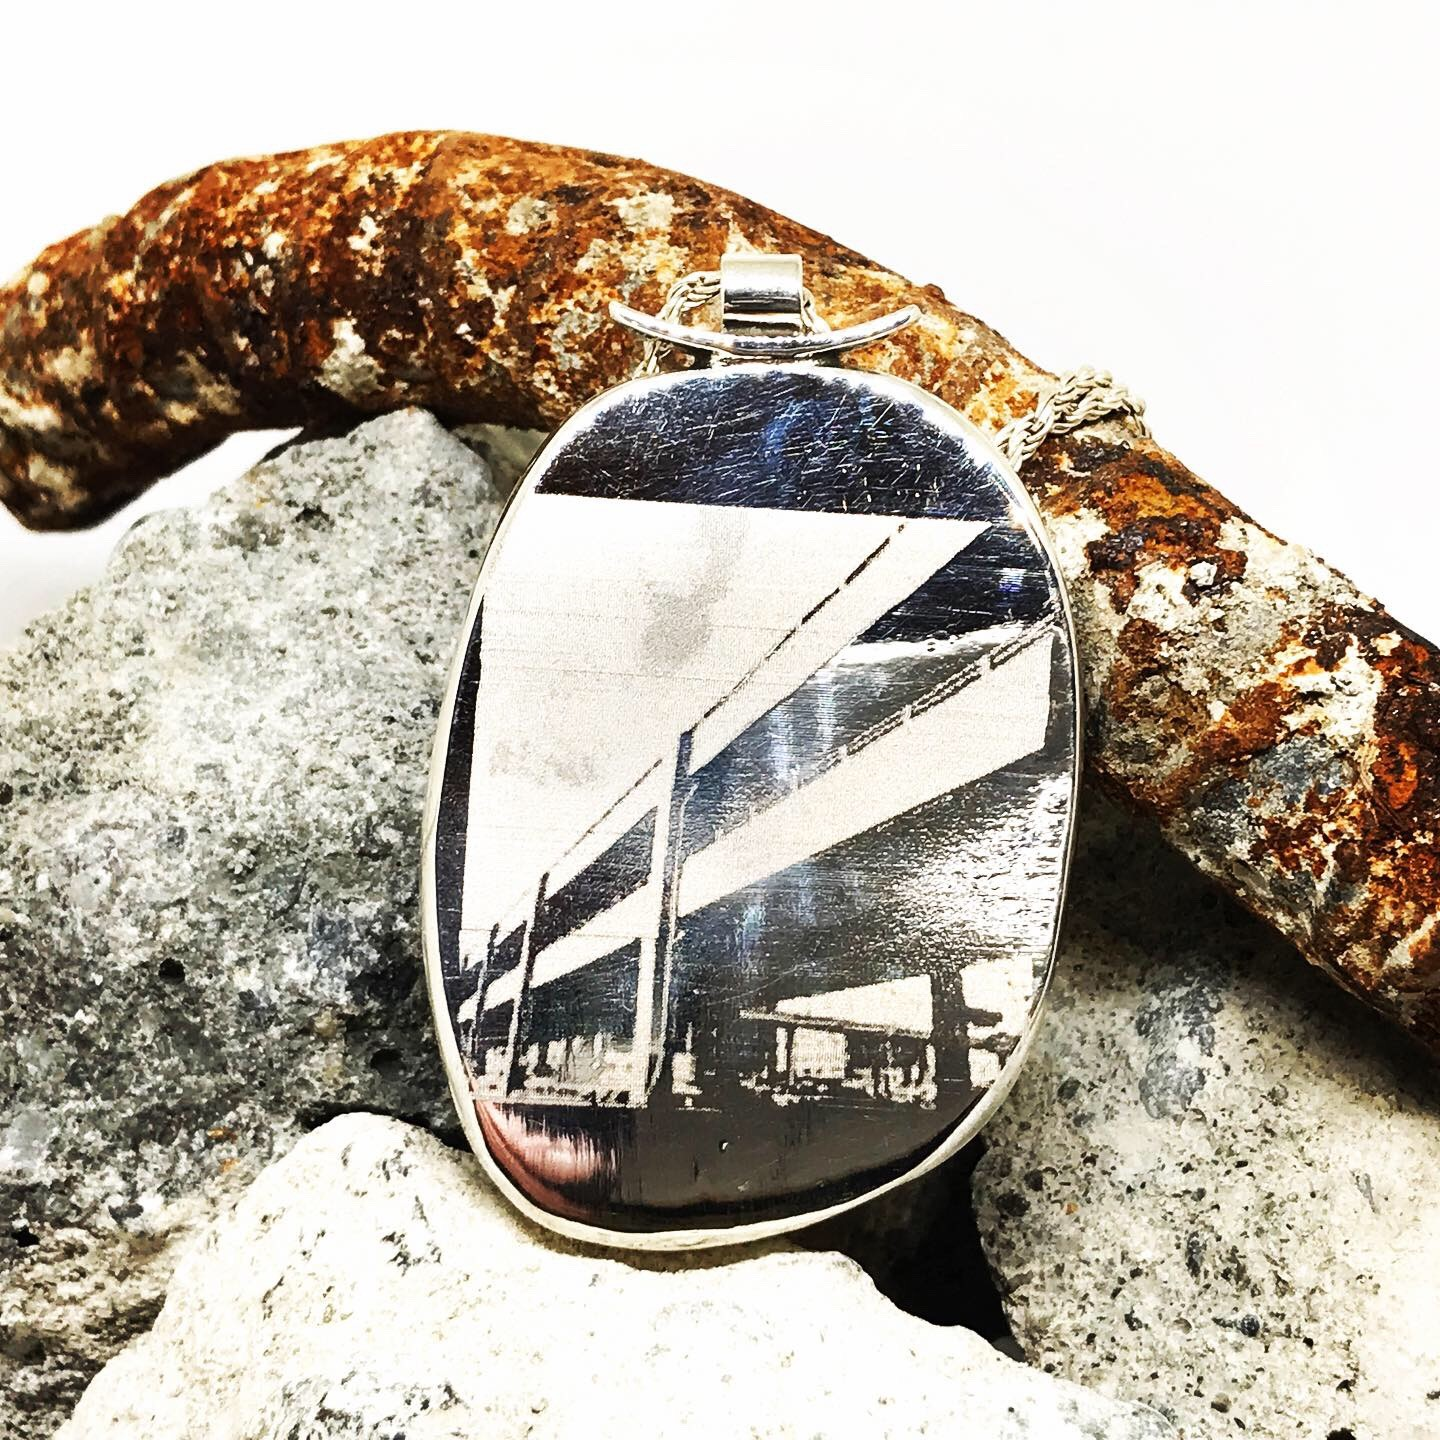 Nostalgic for the Viaduct? You can buy at piece of it at Pike Place Market (Image courtesy of Pike Place Market)